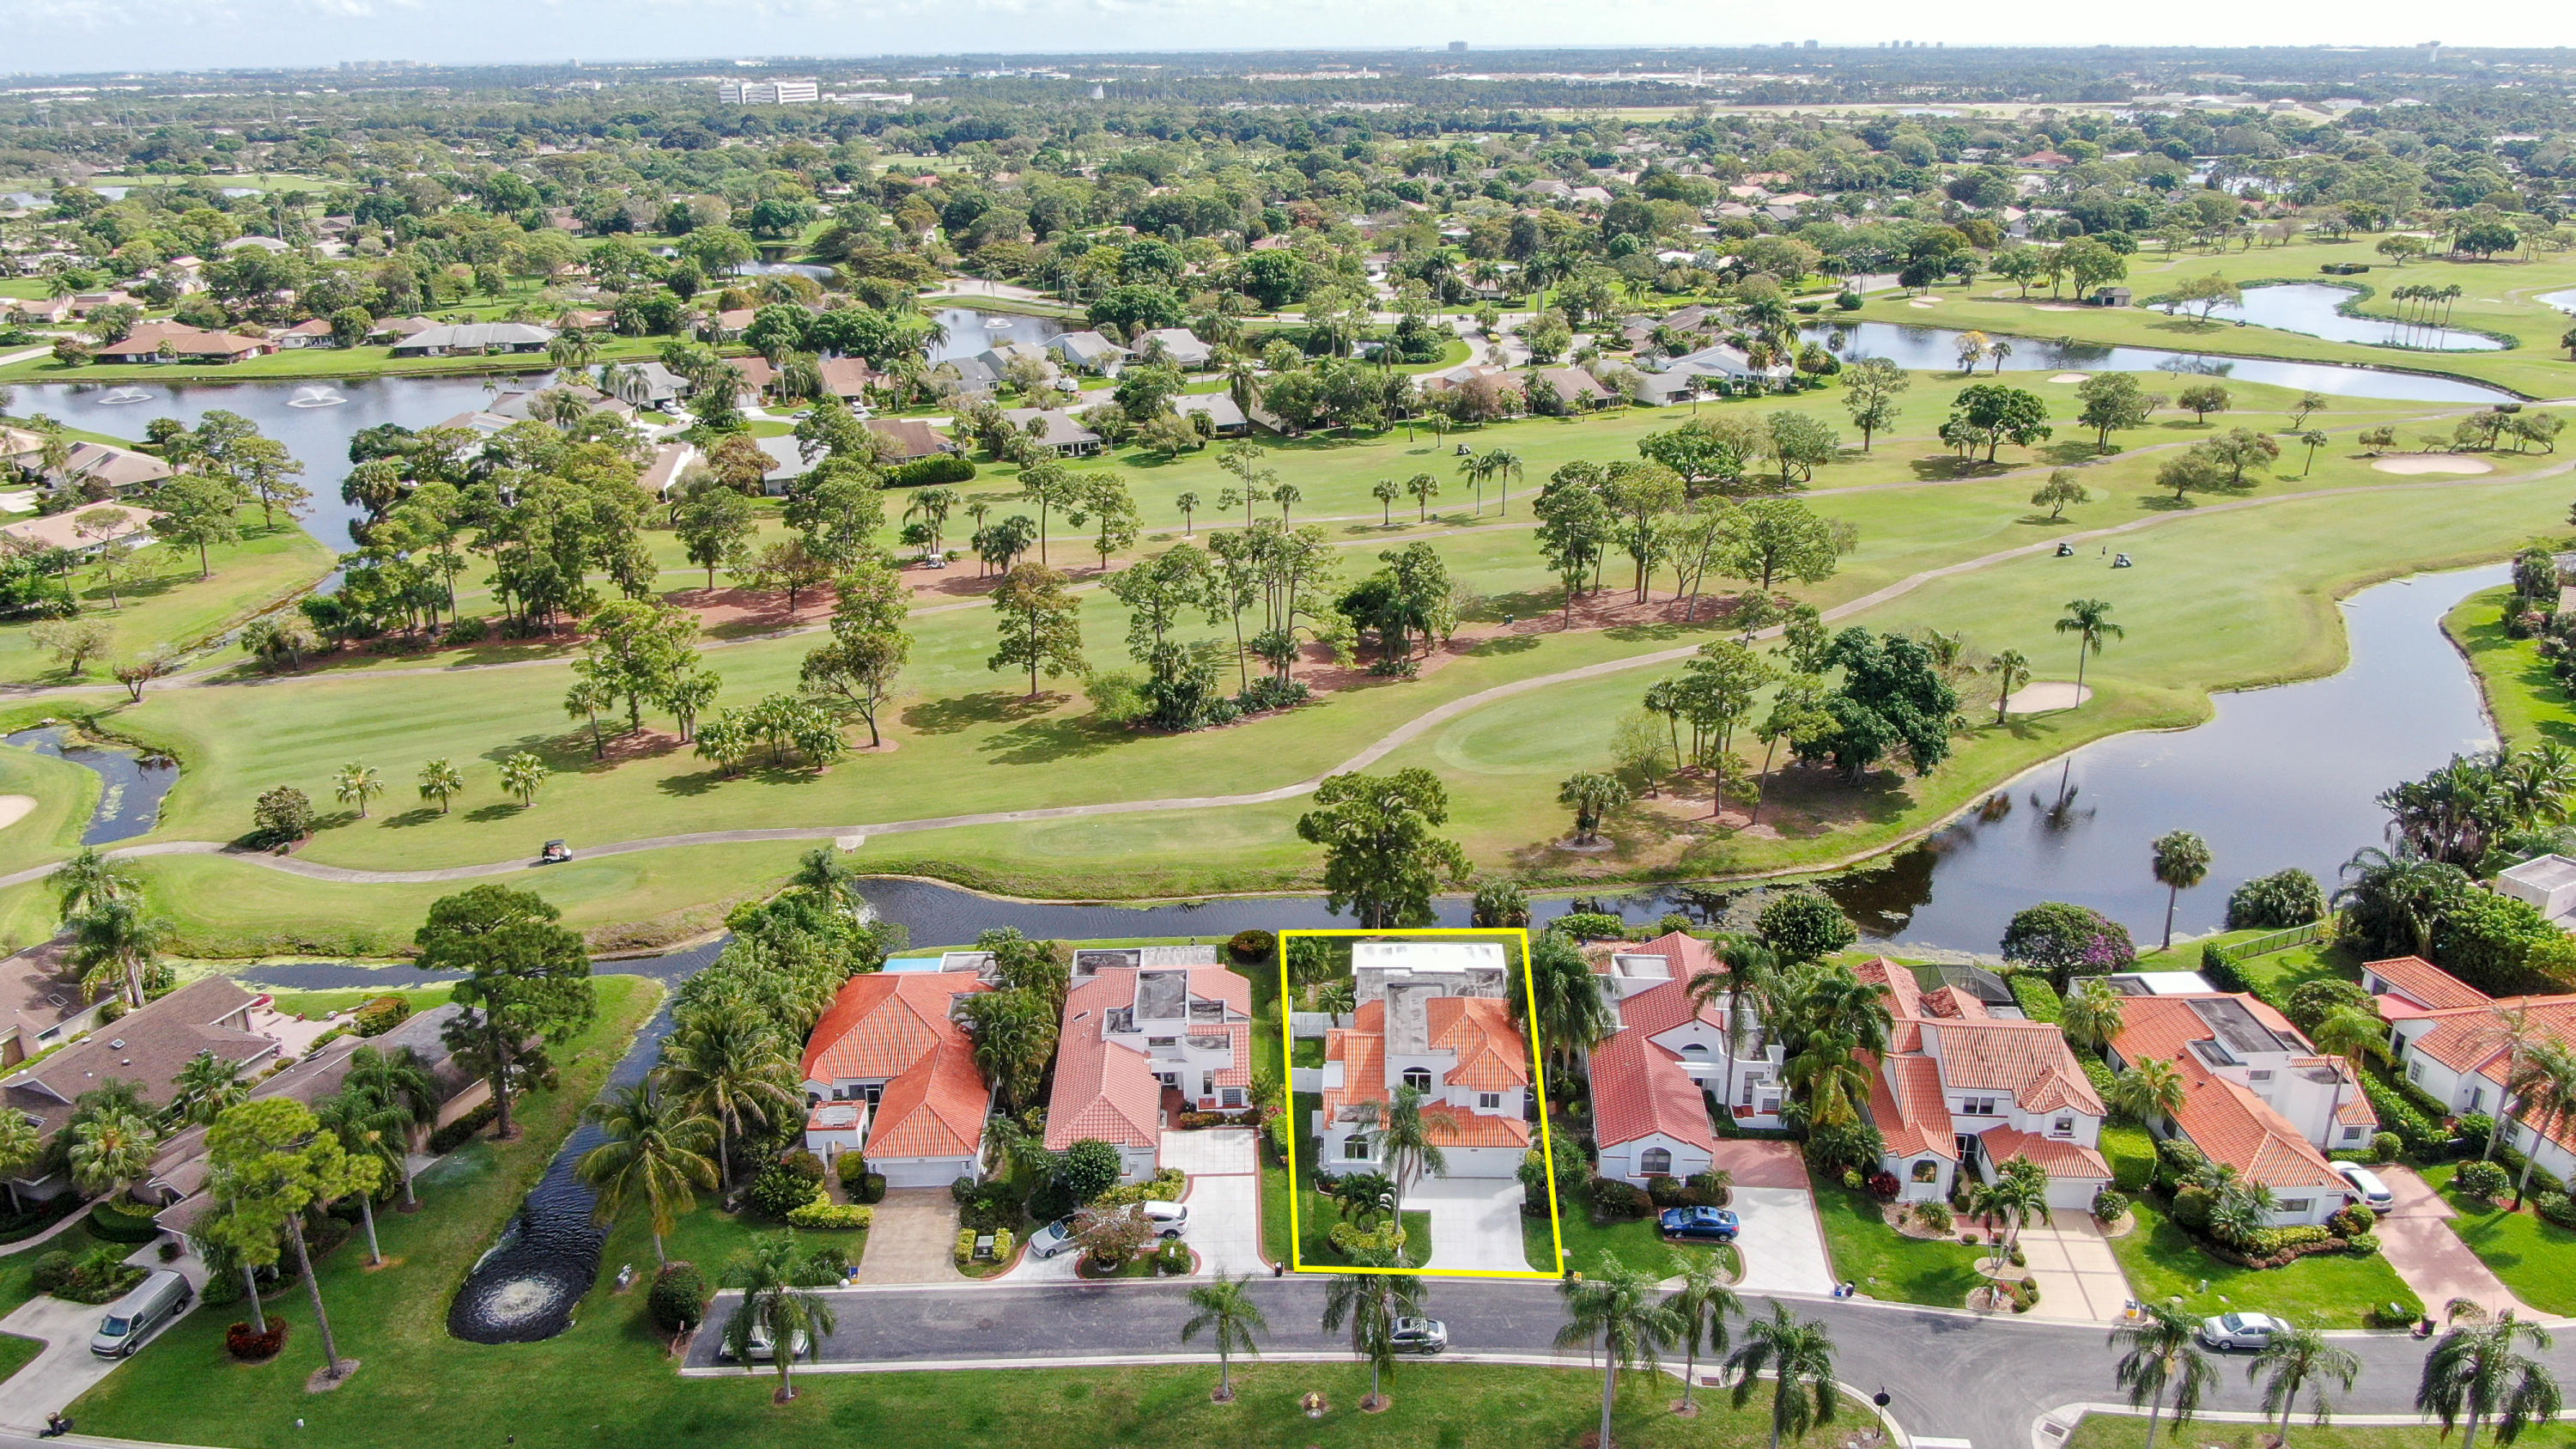 13198 Touchstone Place, Palm Beach Gardens, Florida 33418, 3 Bedrooms Bedrooms, ,2.1 BathroomsBathrooms,A,Single family,Touchstone,RX-10513047